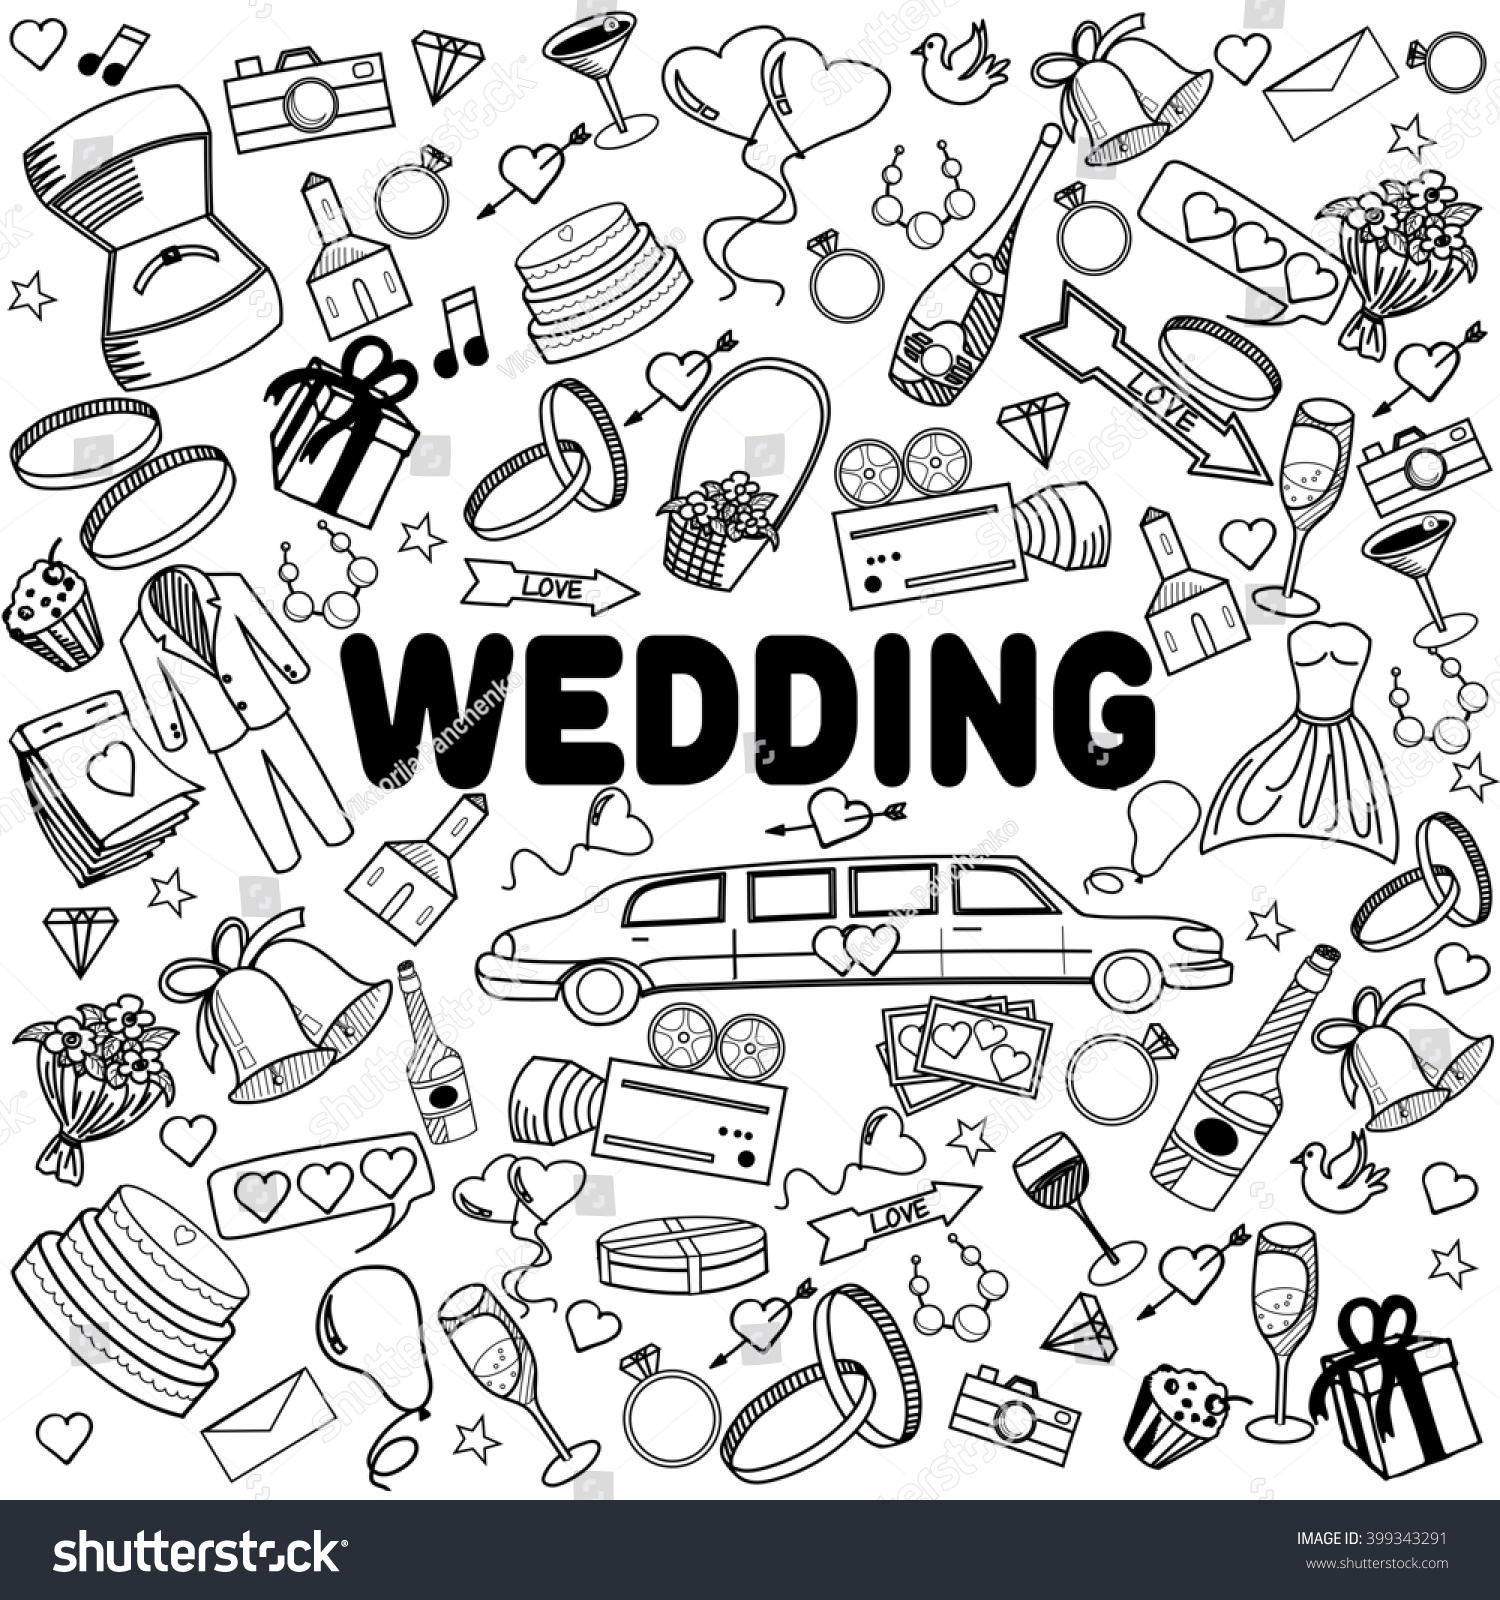 wedding coloring book line art design raster illustration separate objects hand drawn doodle design - Wedding Coloring Book